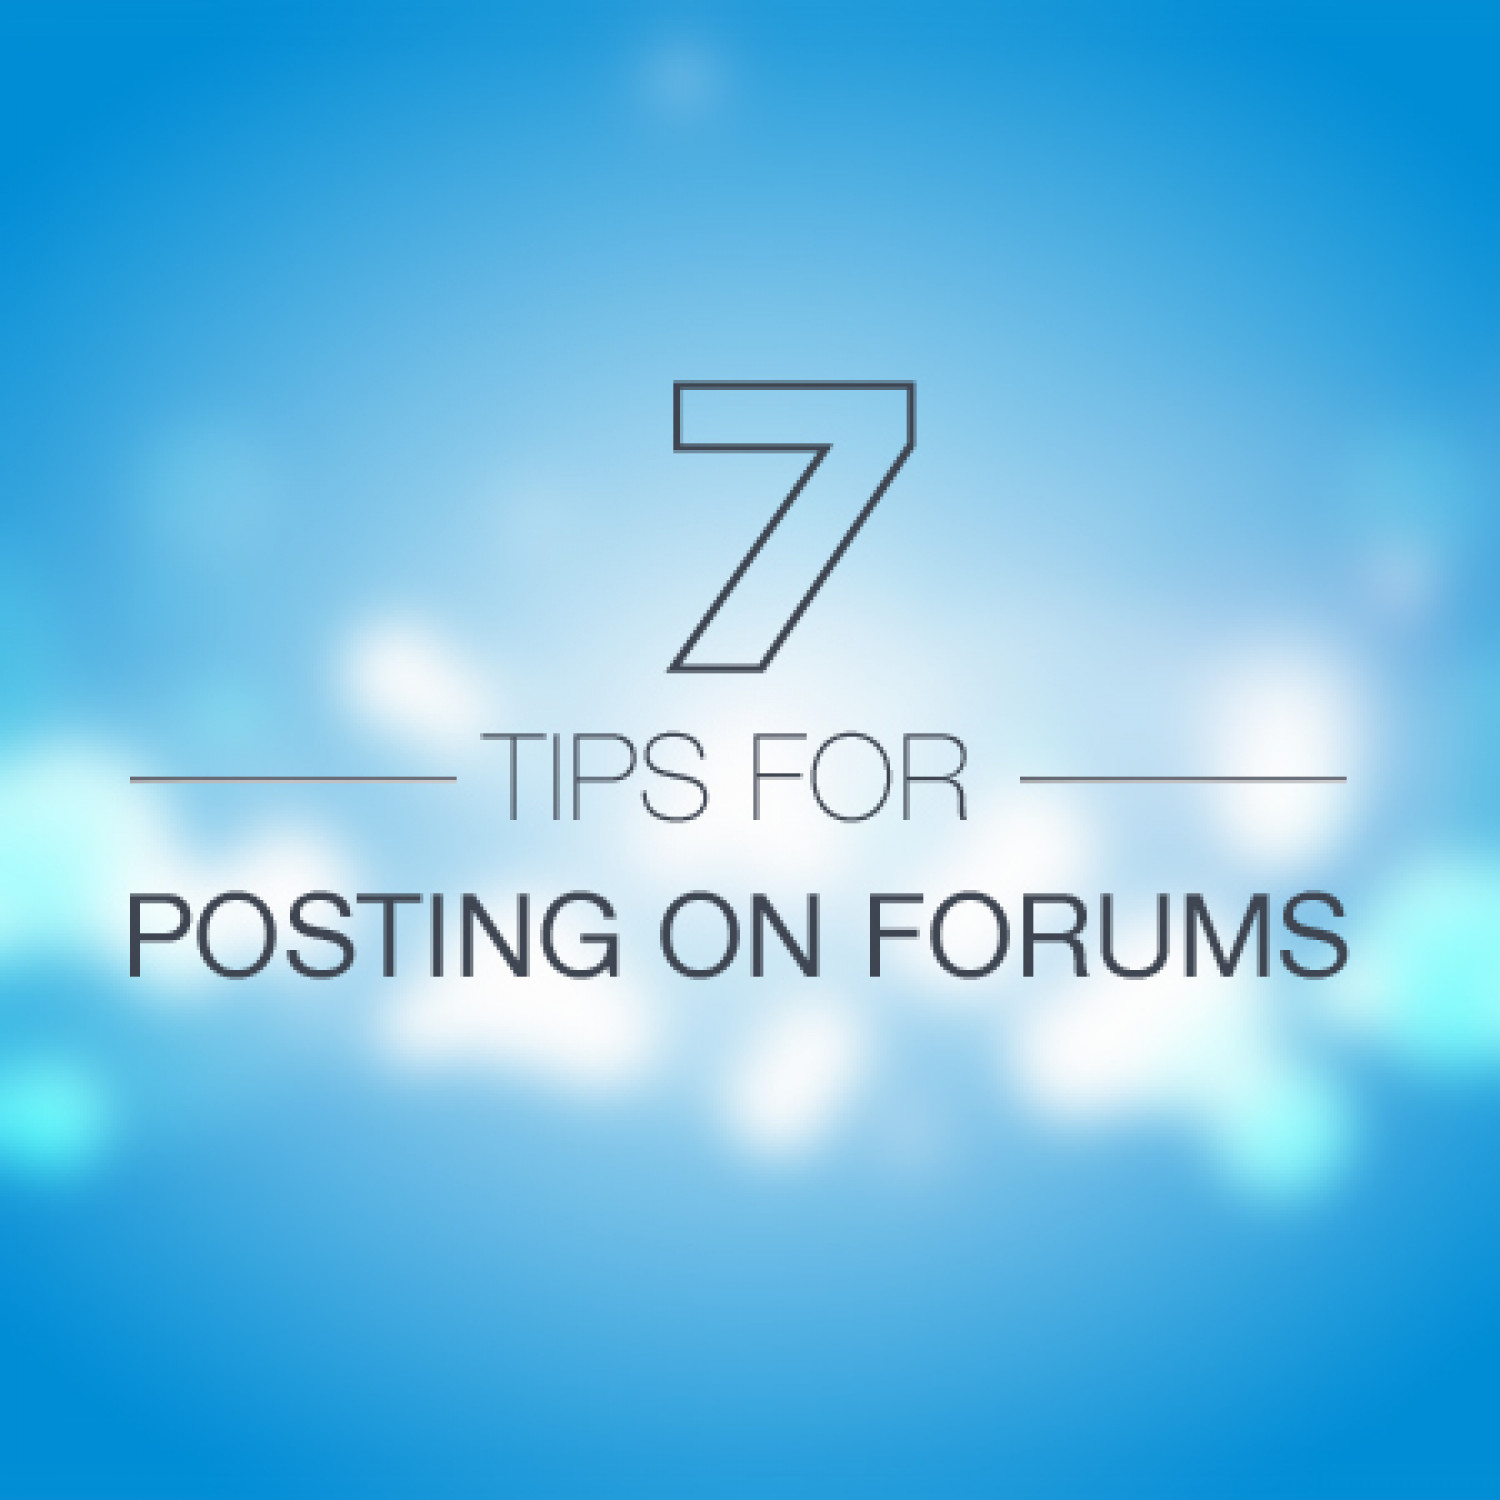 7 Tips for Posting on Forums Infographic